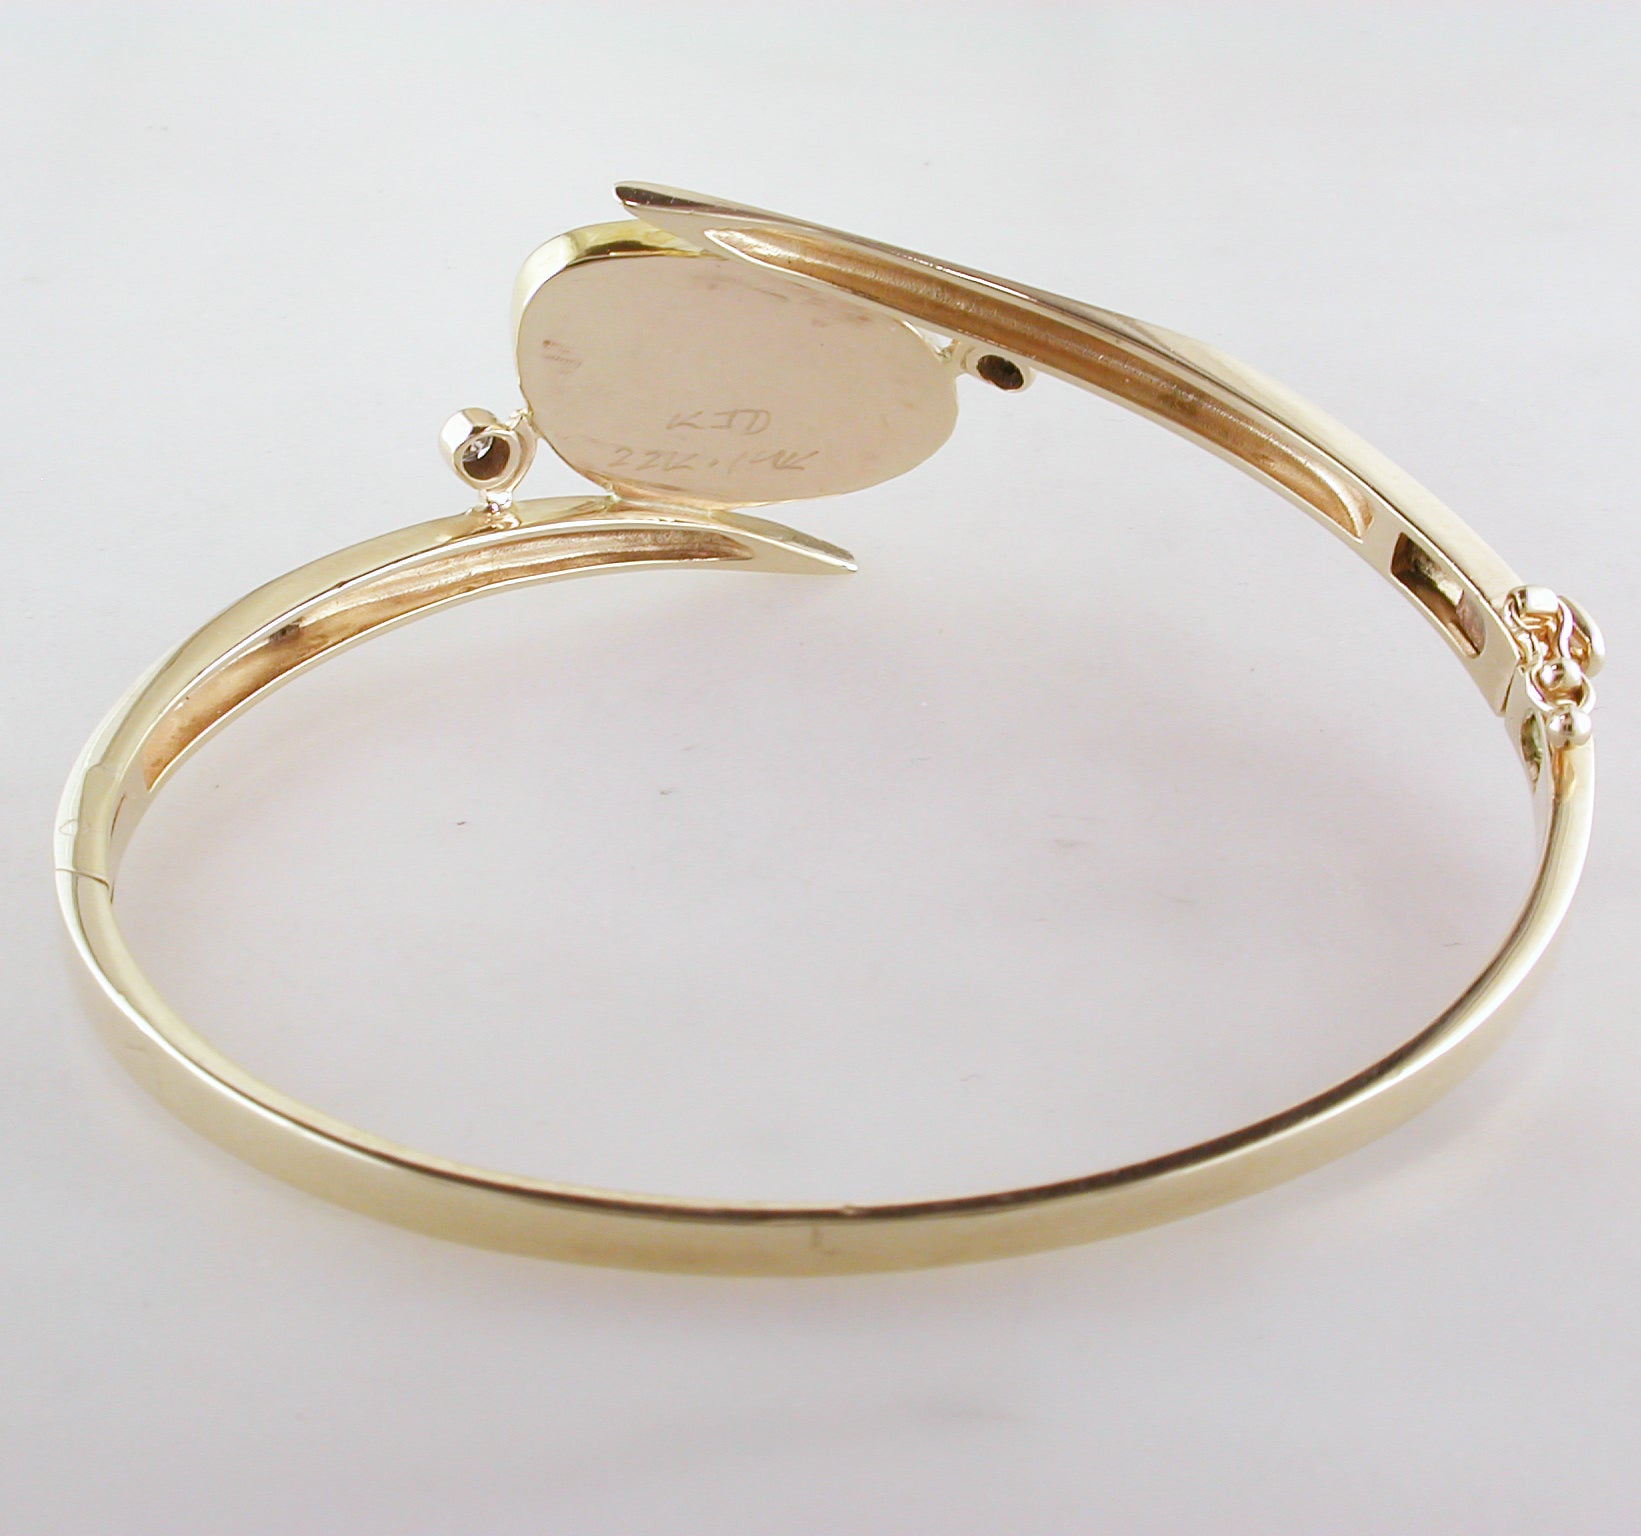 signature bracelets levin bracelet gold silver sterling rose and bangle ed in for women bangles